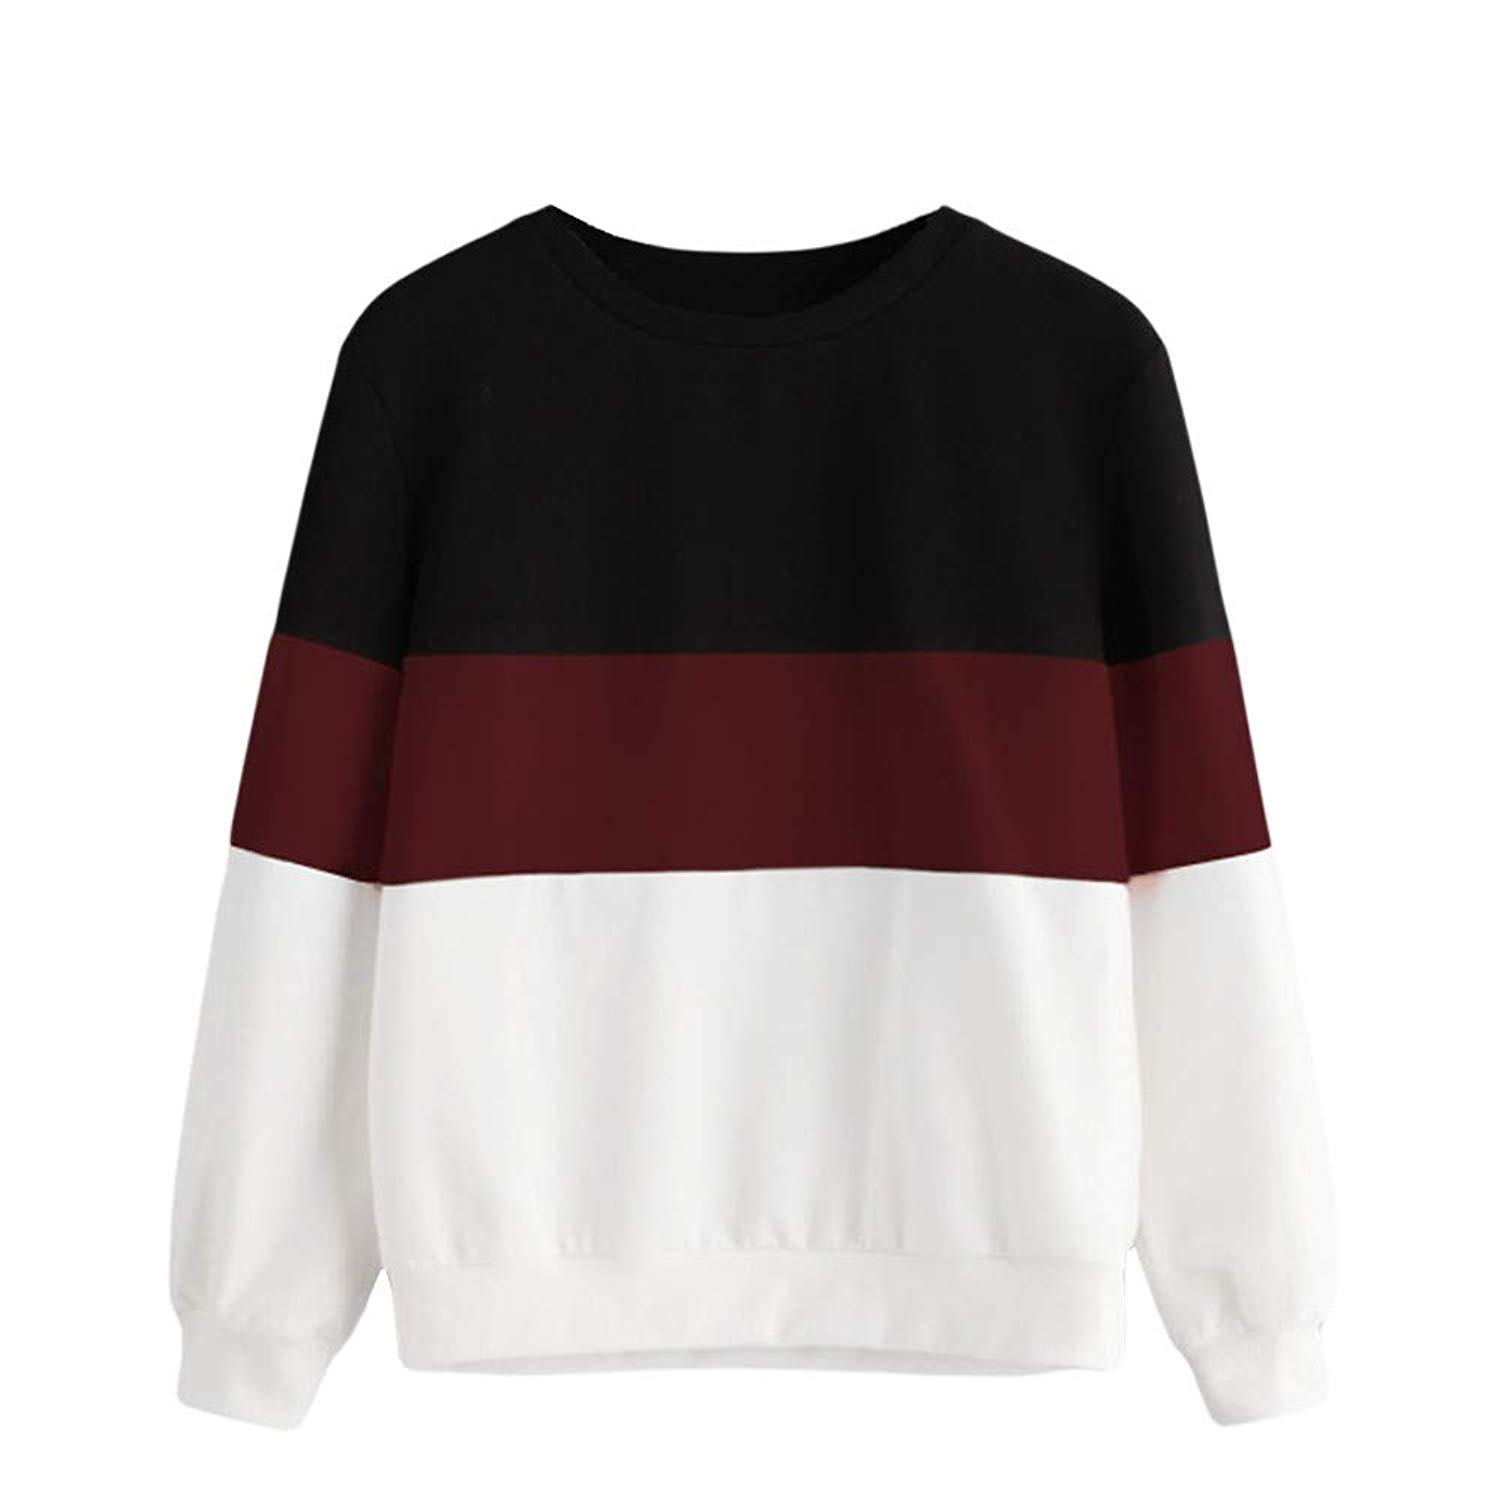 Hengshikeji Womens Casual Long Sleeve Cut Sew Stripe Crop Top Hoodies Sweatshirts Blouses Shirts Jumpers Tunic Pullover